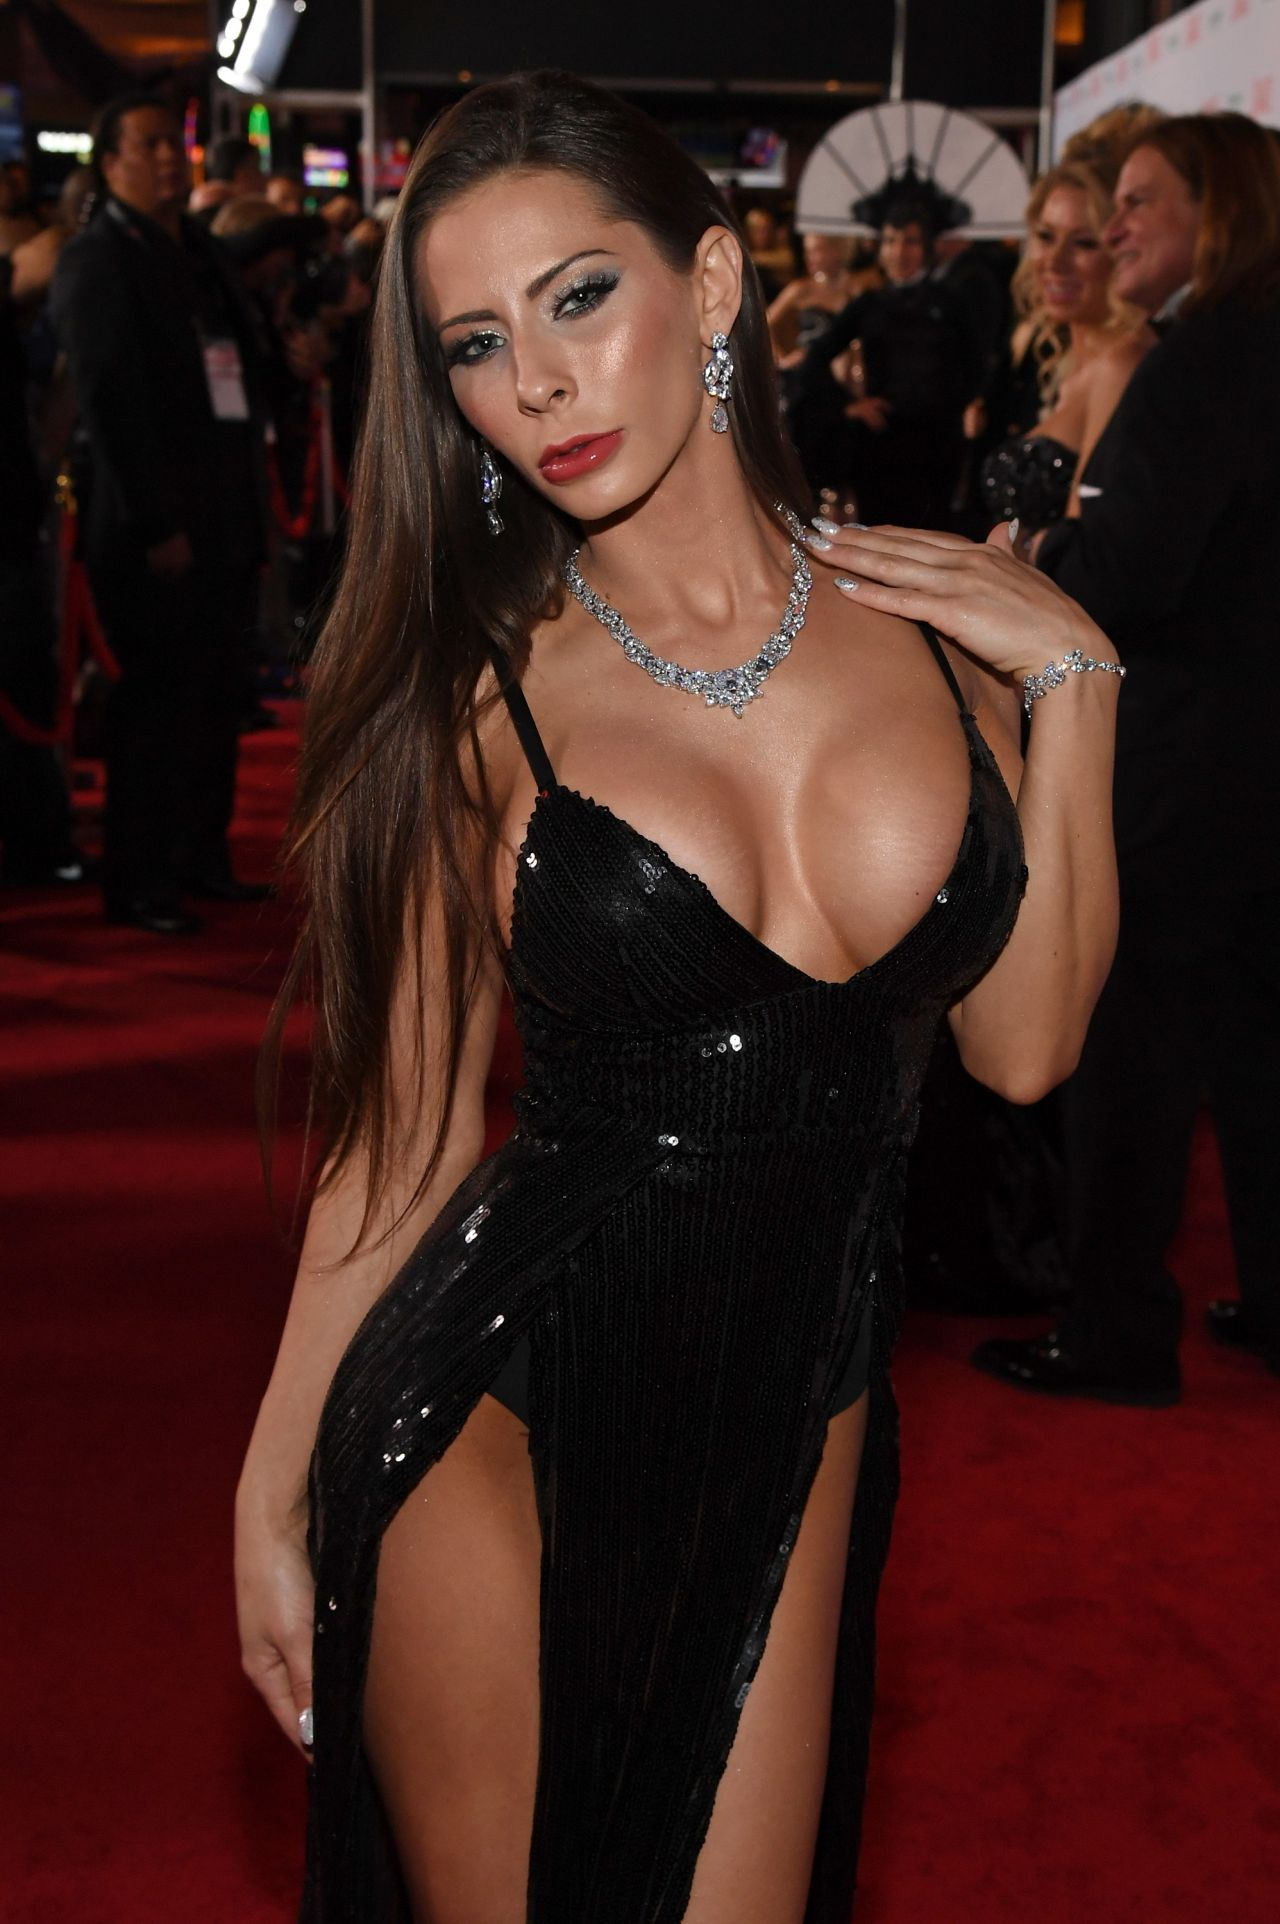 Madison Ivy 4K Wallpapers